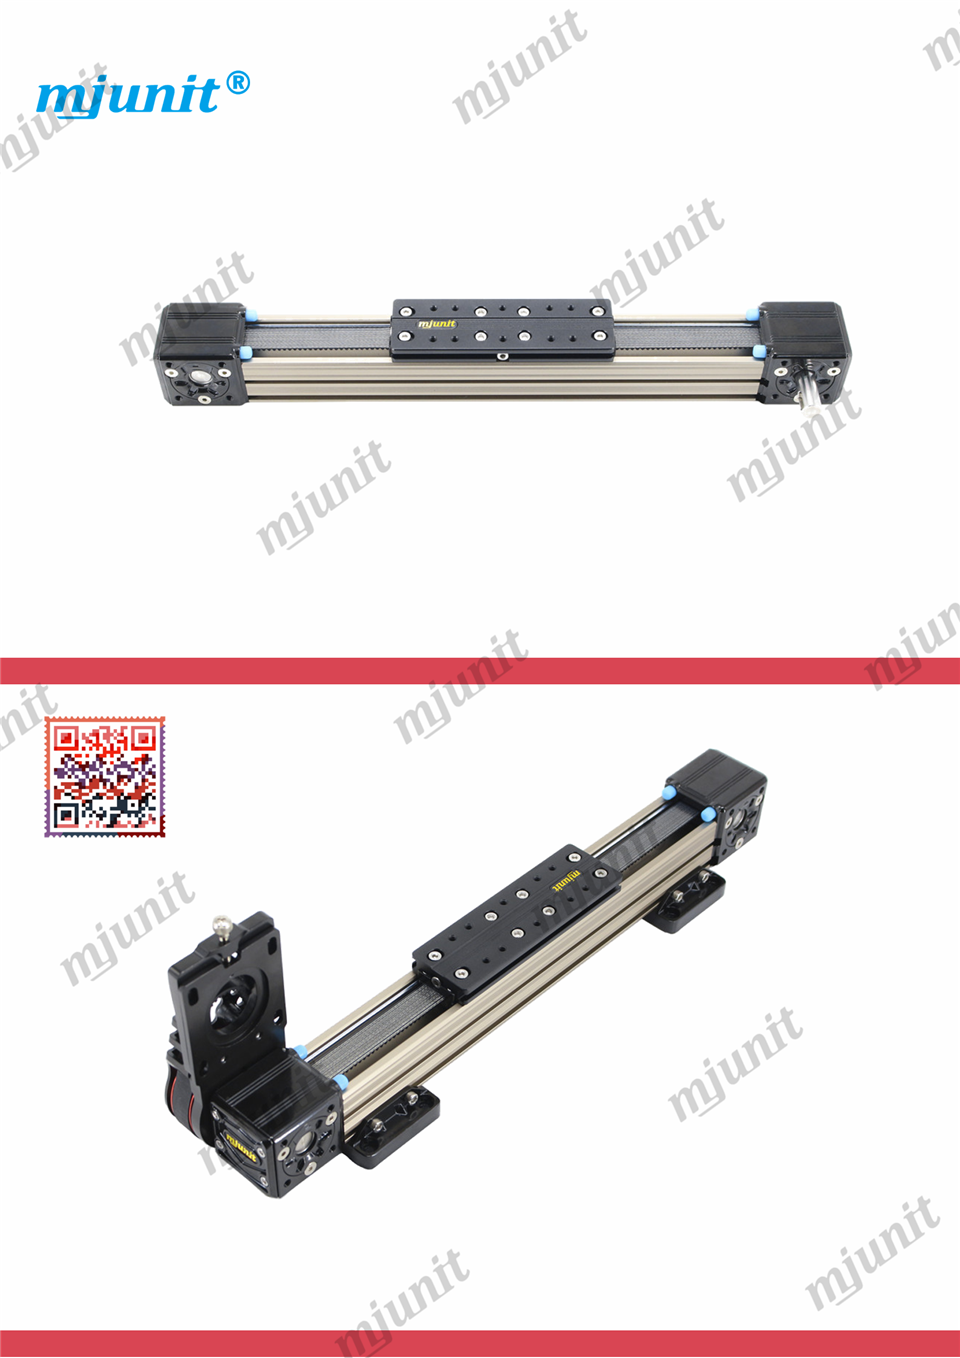 mjunit MJ40S belt drive linear motion guide guide rail with 2000mm stroke